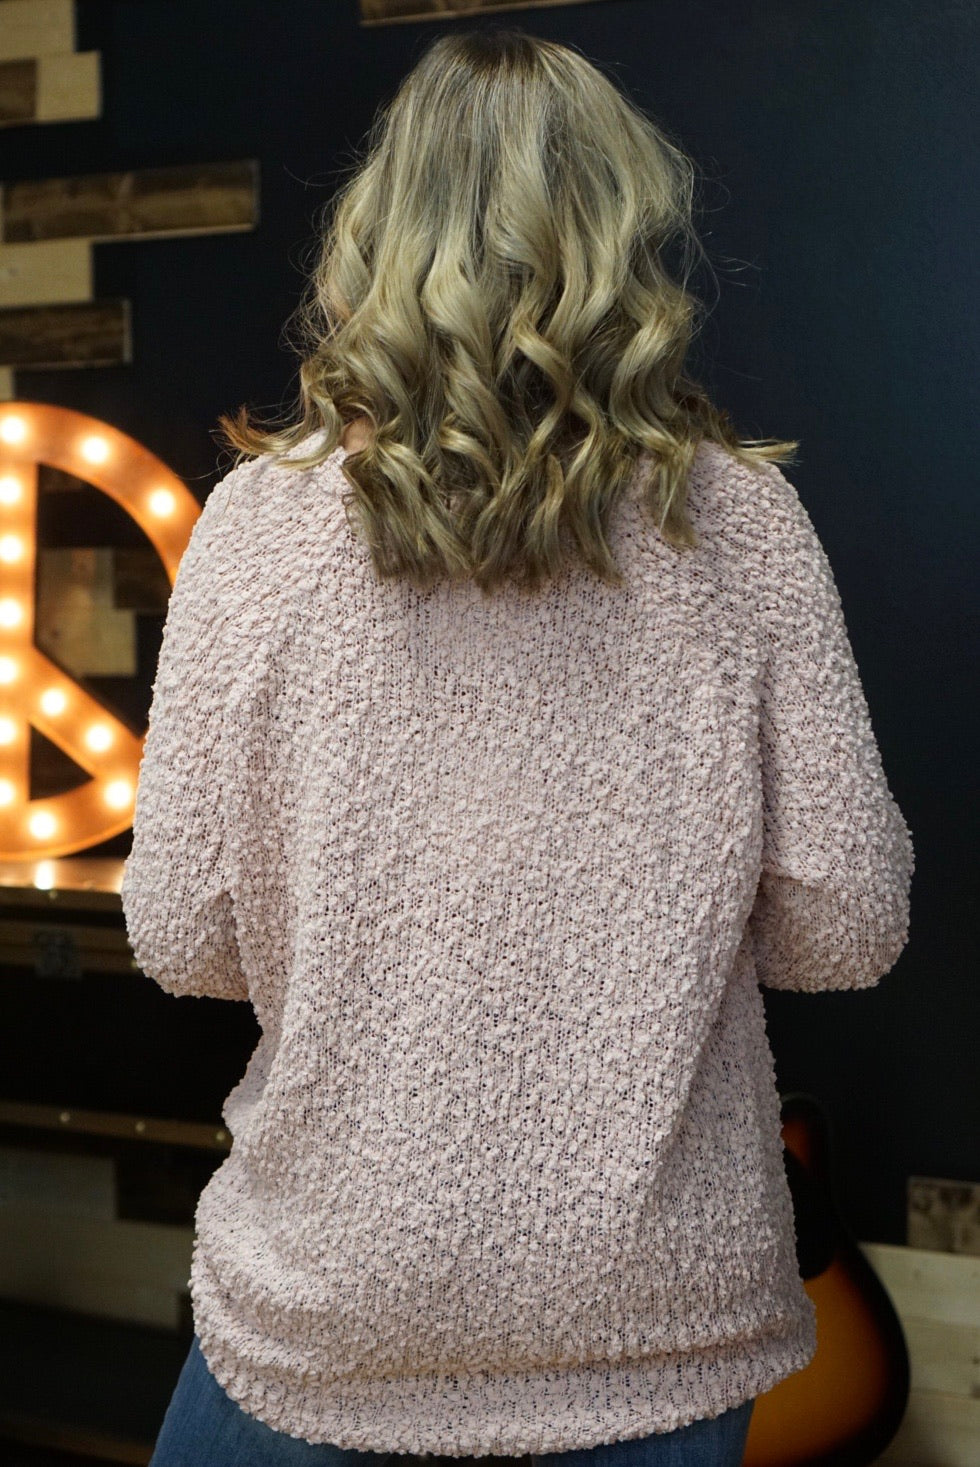 Cupid's Got Me Blush Popcorn Sweater